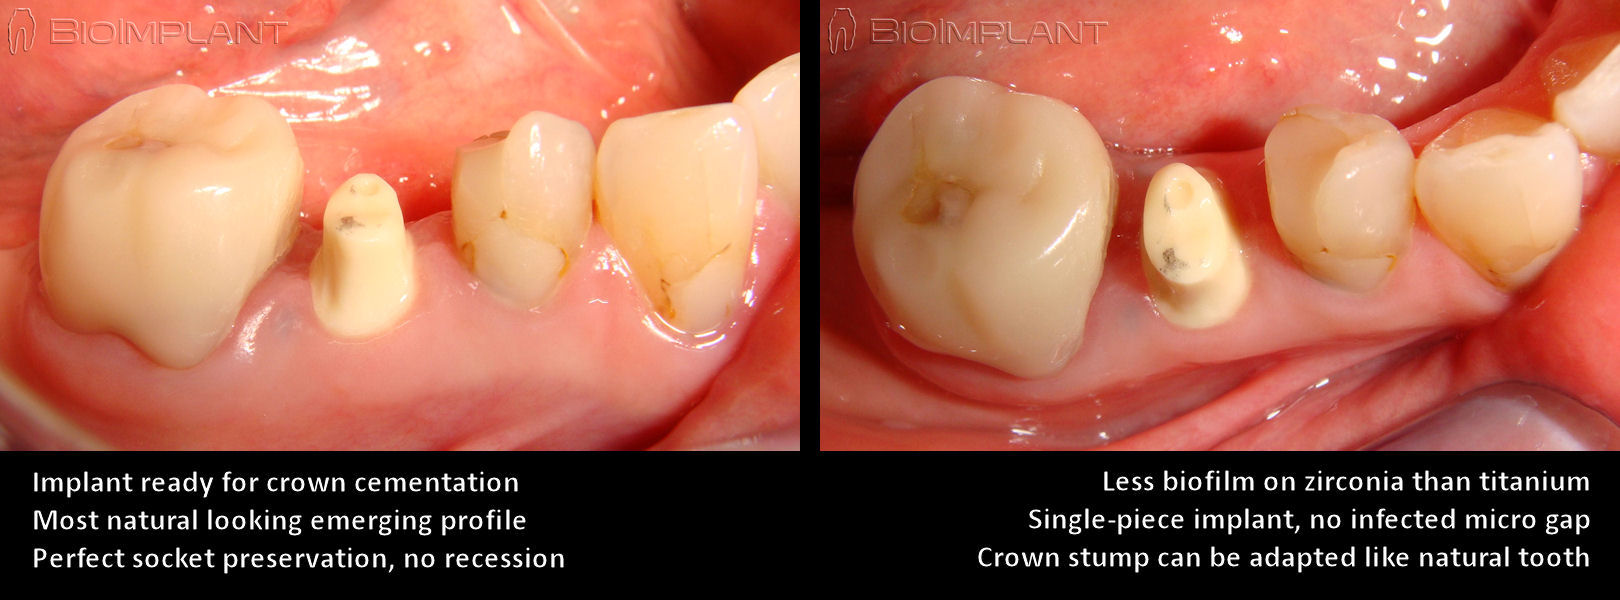 single_piece_zirconia_implant_crown_stump